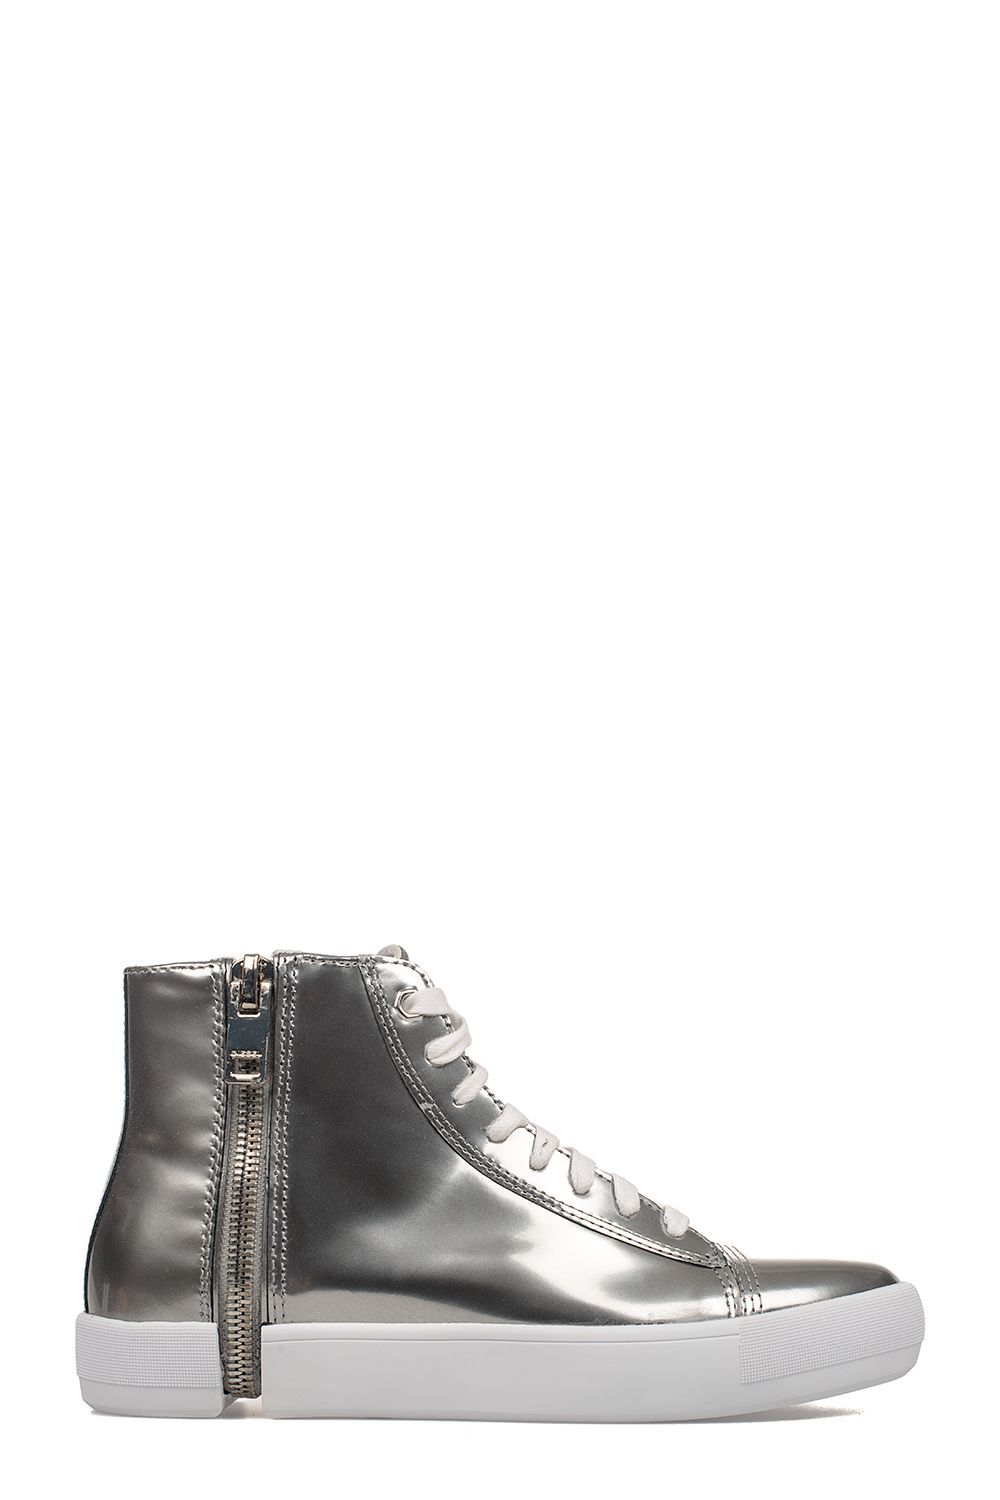 Silver Nentish Brushed Leather High-top Sneakers